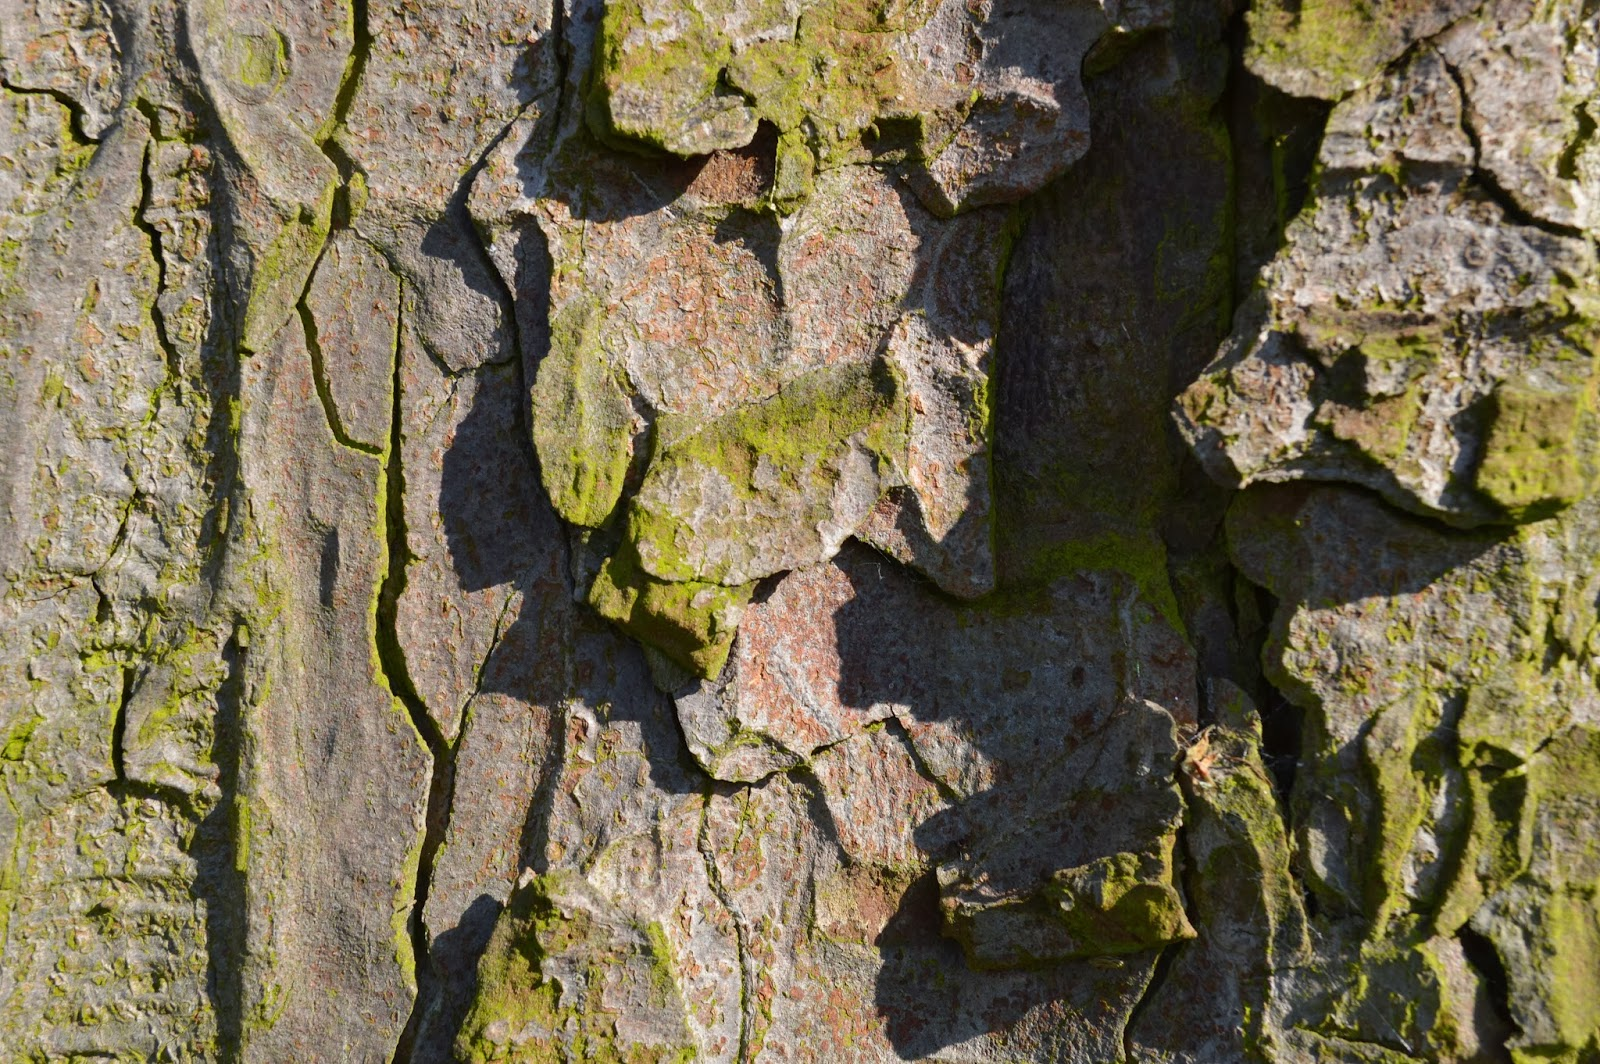 photograph, photography, Essex, Chelmsford, local, walk, park Hylands House, day out, dog walking, sunshine, building architecture, V festival, fields, flint cottage, tree, blue sky, bark, rough, texture